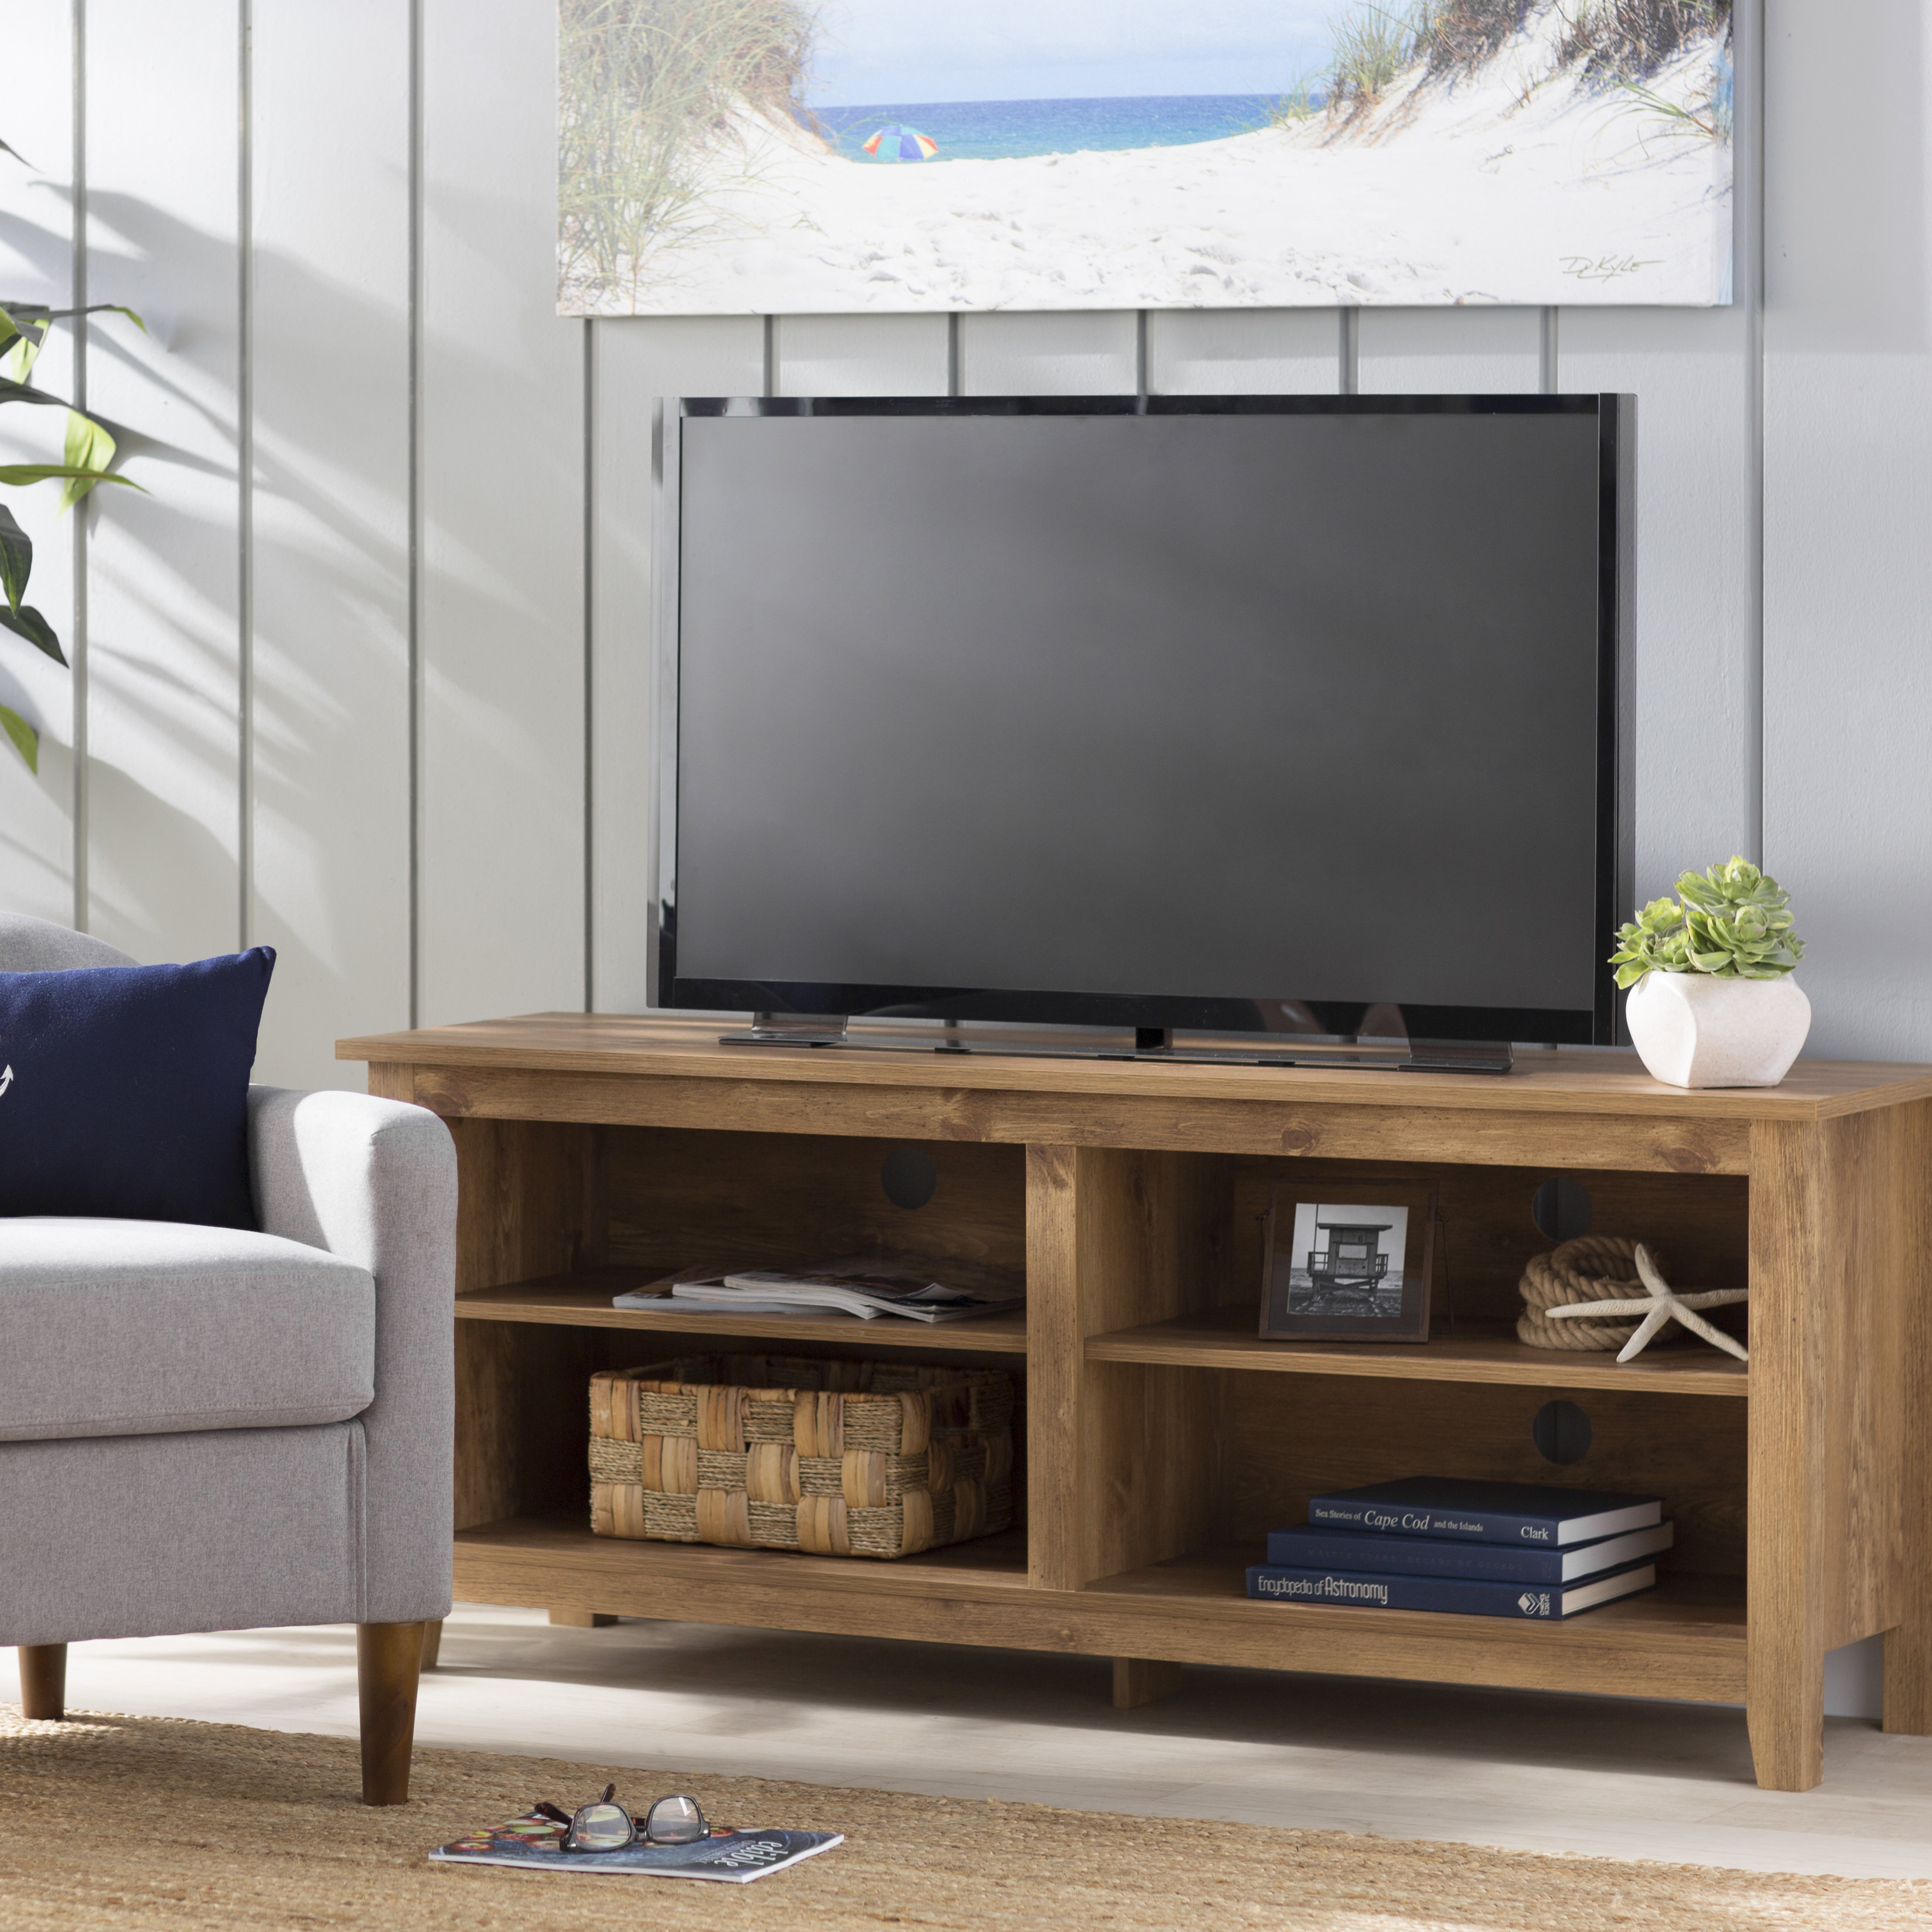 90 Inch Tv Stand | Wayfair pertaining to Century White 60 Inch Tv Stands (Image 4 of 30)